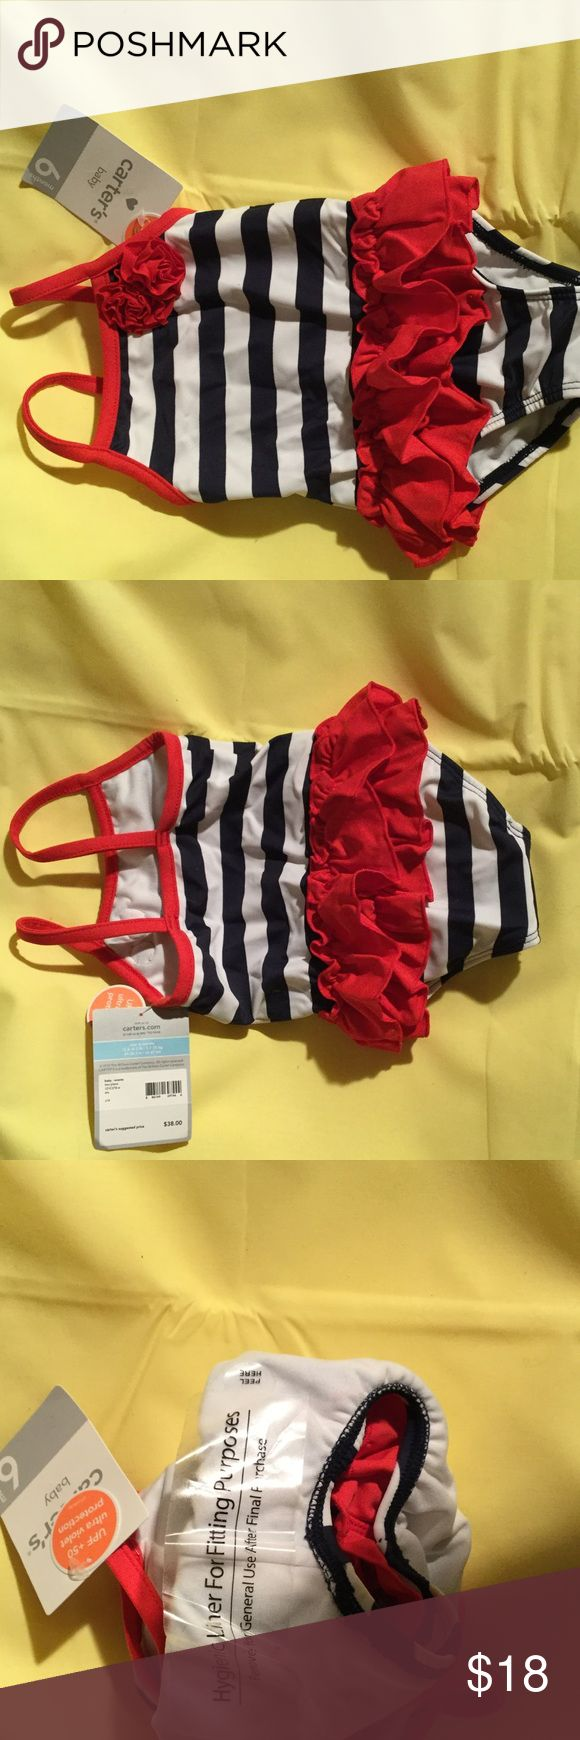 Baby girl red white blue one piece swimsuit 6m NWT Carters baby girl. Swimsuit in a blue and white strip with red waistline ruffles and a flower embellishment. Super cute with UPF 50 sun protection and NWT. 6m size carters Swim One Piece